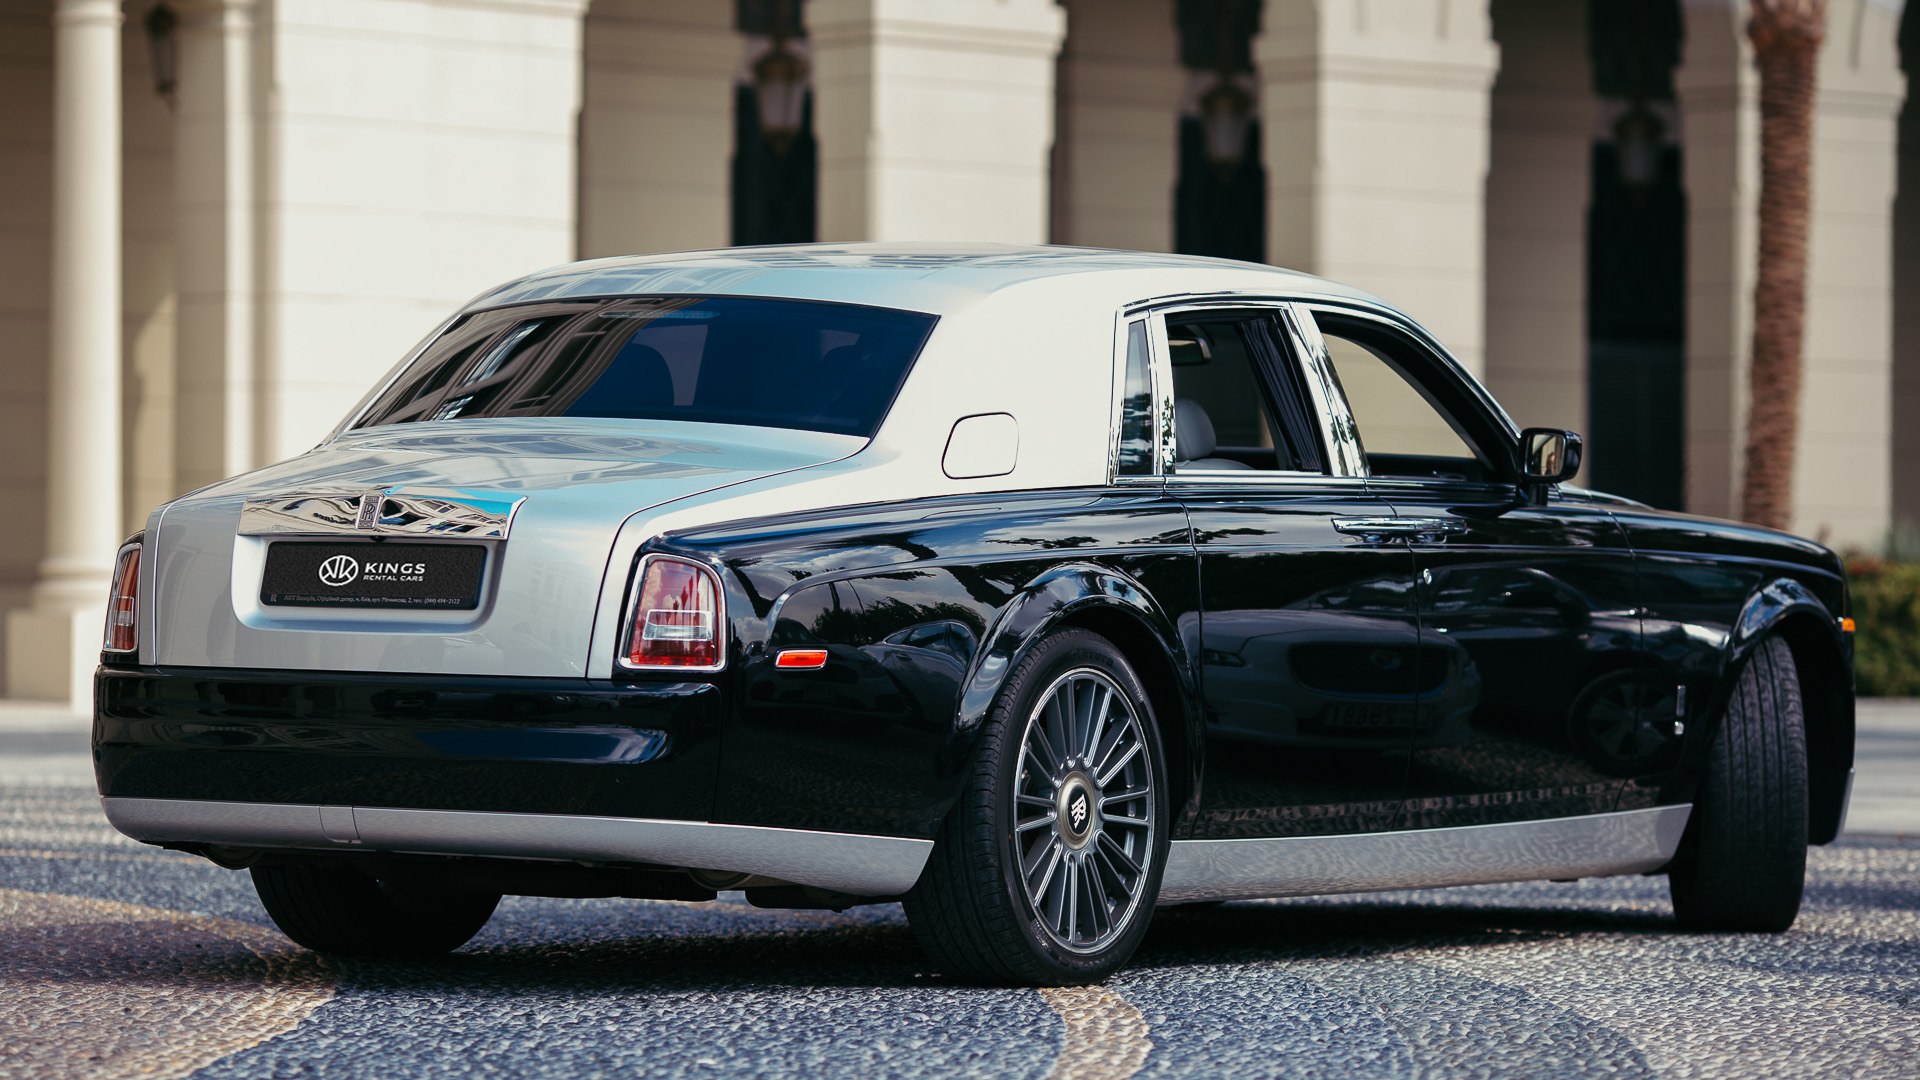 Rolls Royce Phantom Wallpapers Pictures Images